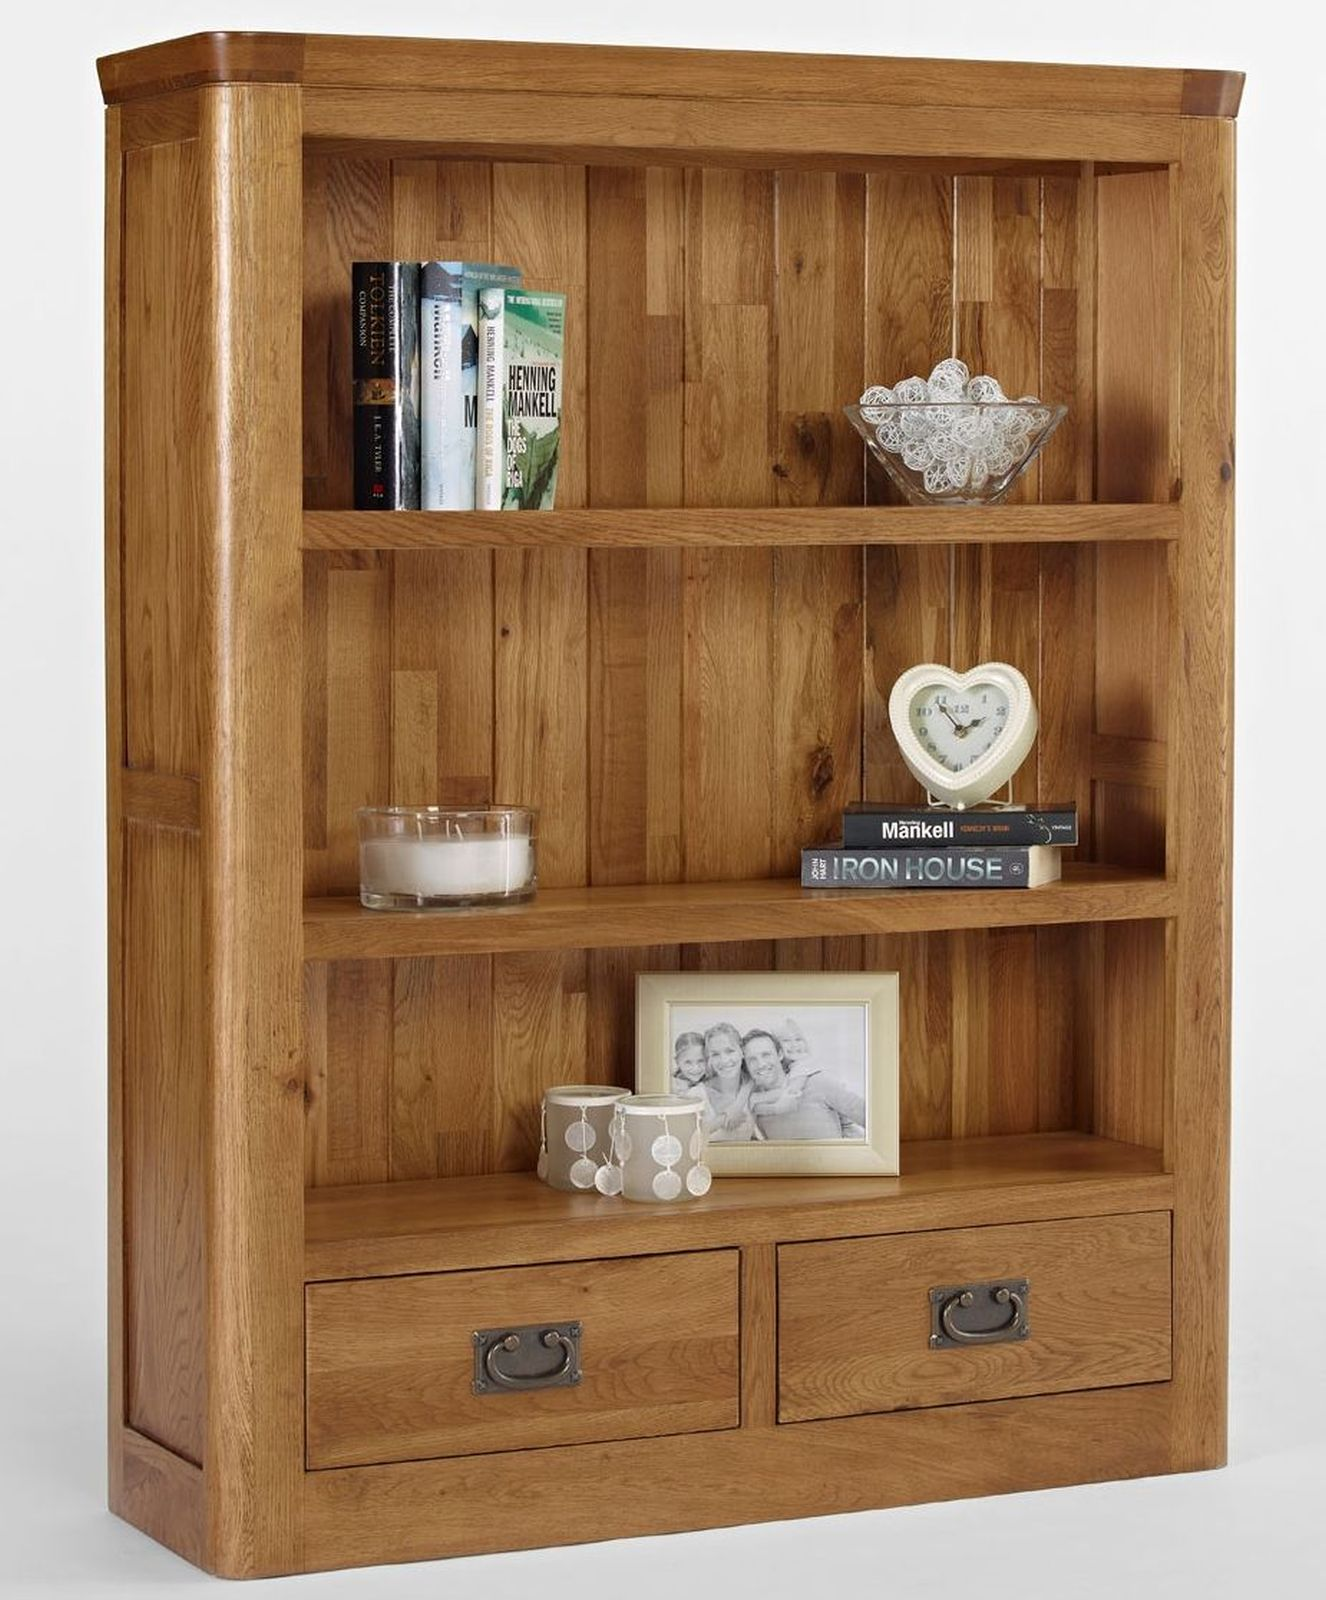 details about dalmore solid oak bedroom furniture small bookcase with